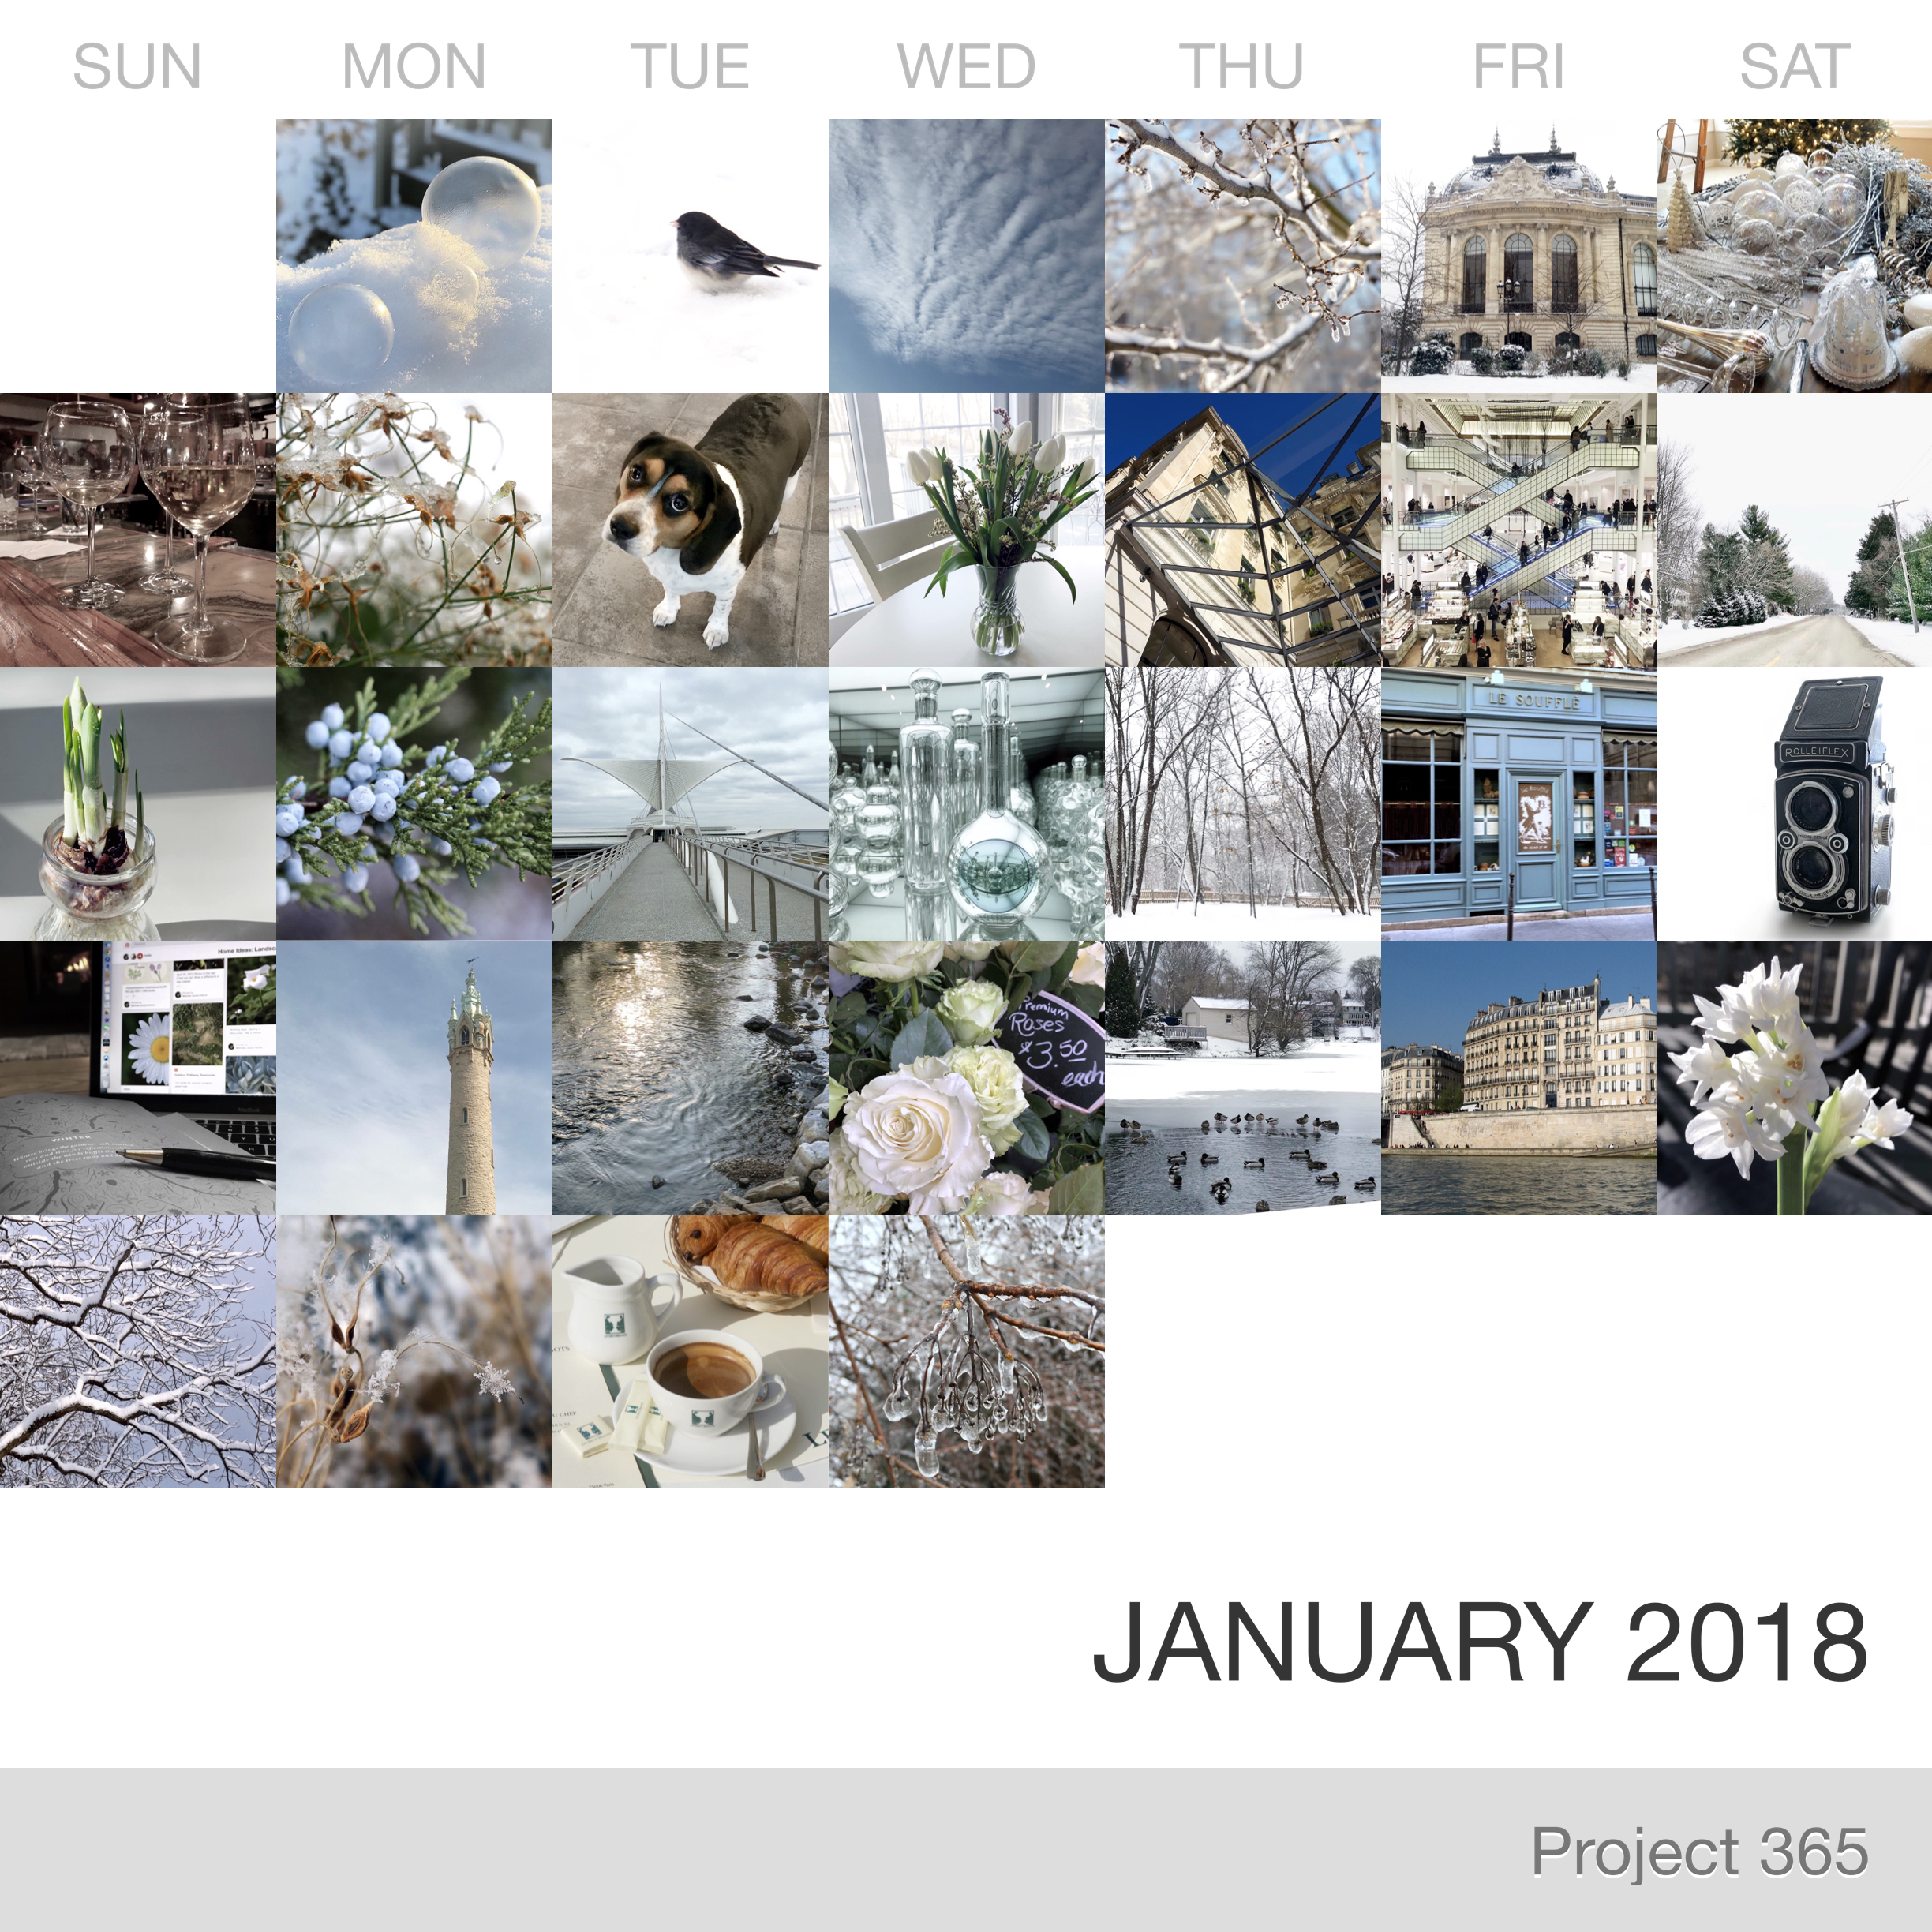 Project 365 _January-2018_Collage.jpg